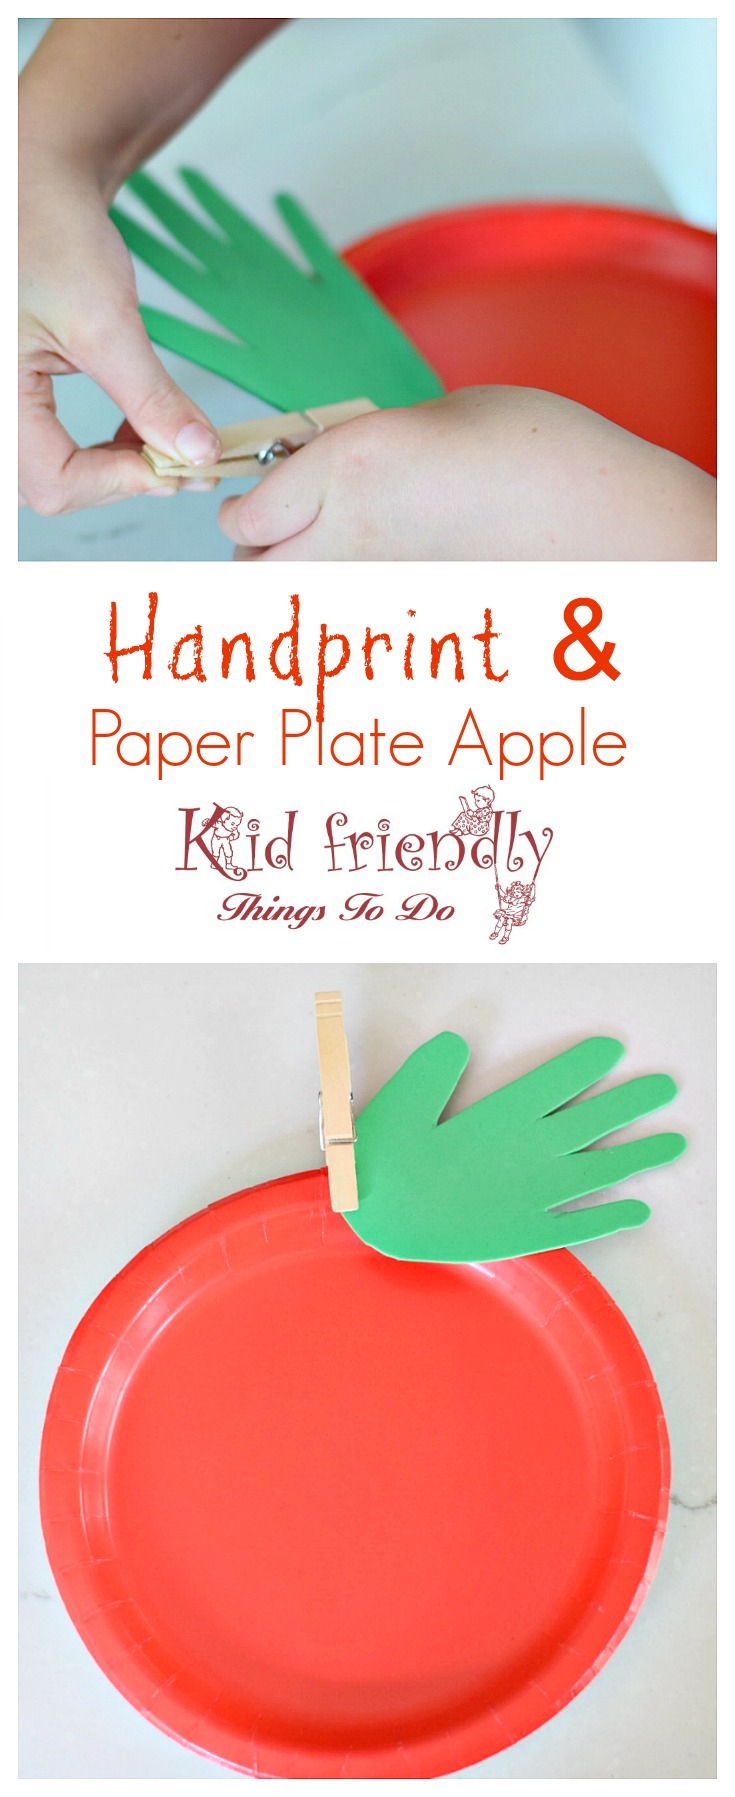 Make a Simple Paper Plate & Handprint Apple with the Kids - Easy and adorable. Great Fall, back to school, & preschool craft - www.kidfriendlythingstodo.com